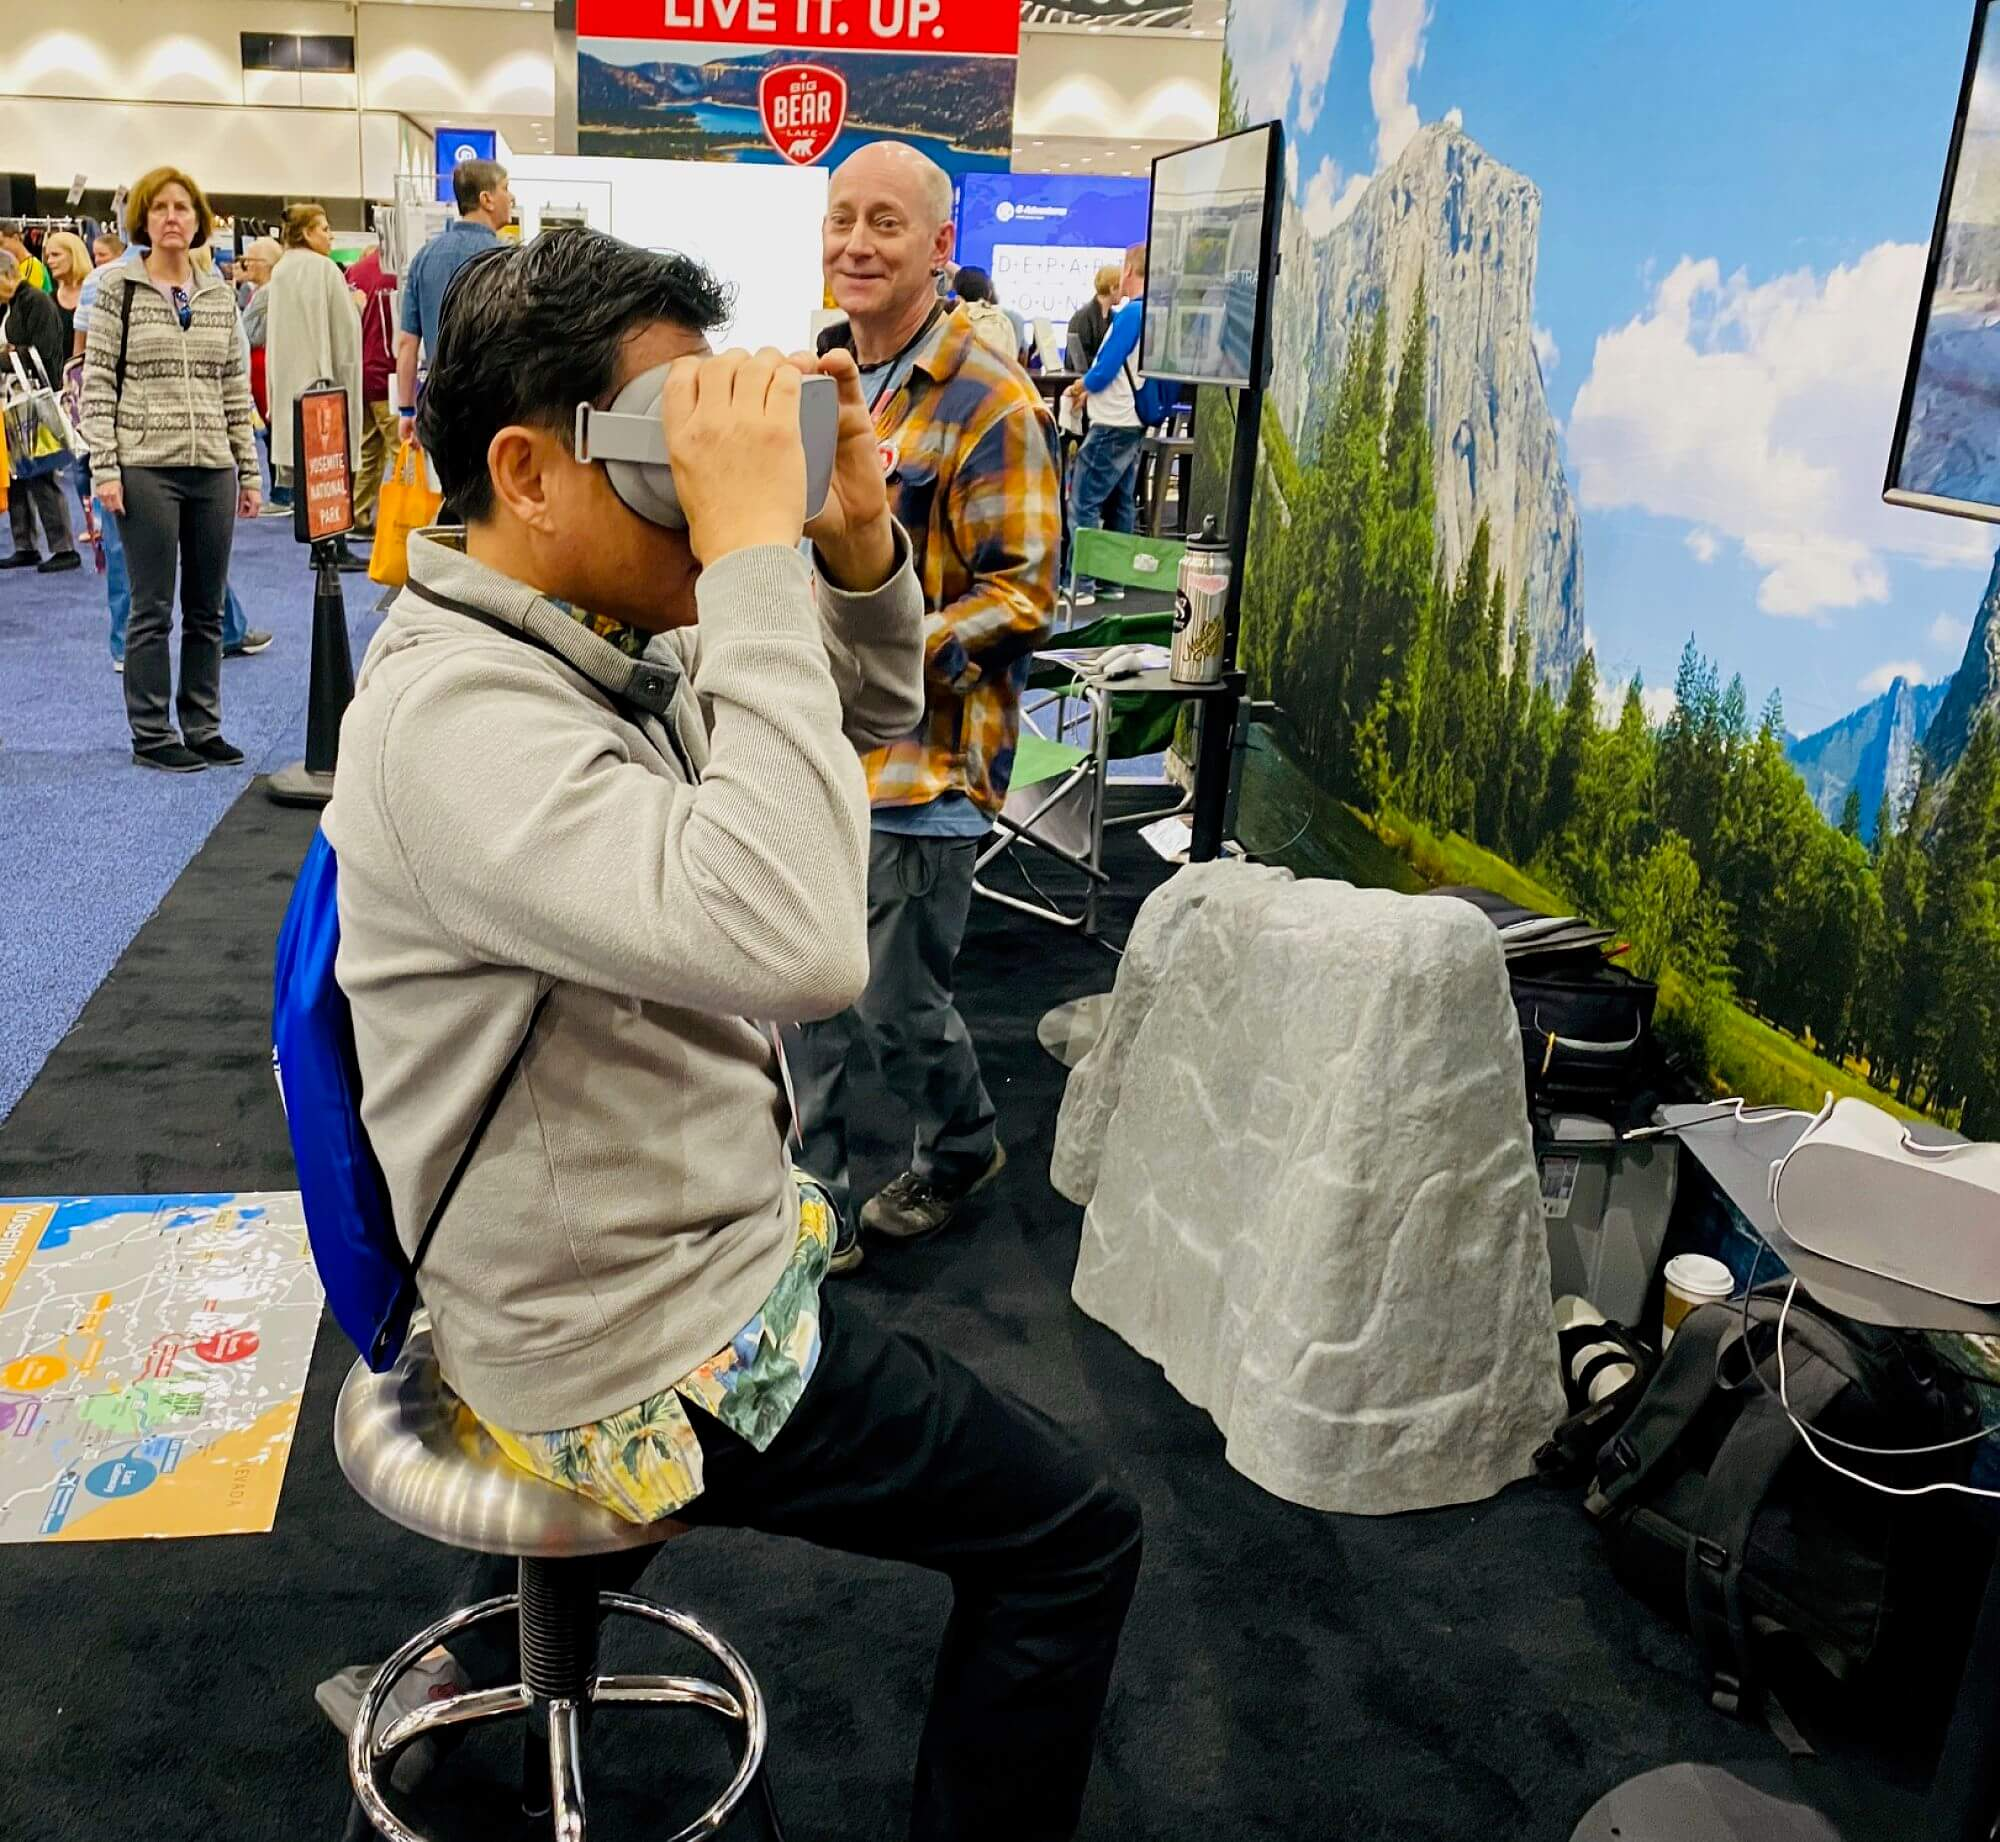 Jason at the Travel and Adventure Show Los Angeles